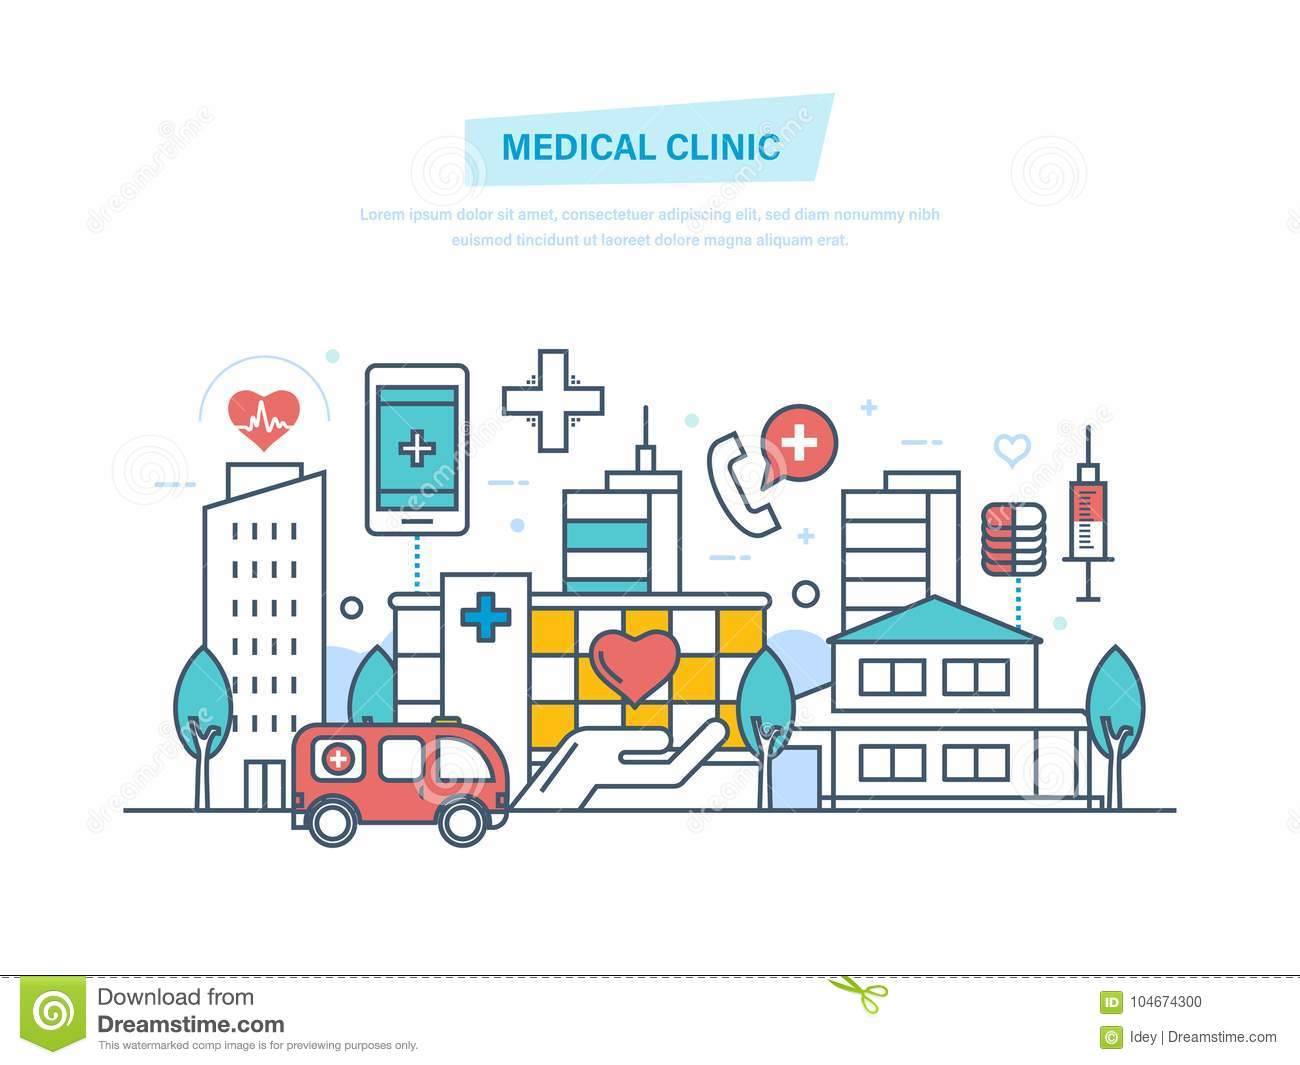 Medical clinic city hospital building healthcare system and download medical clinic city hospital building healthcare system and medical facility stock vector ccuart Gallery